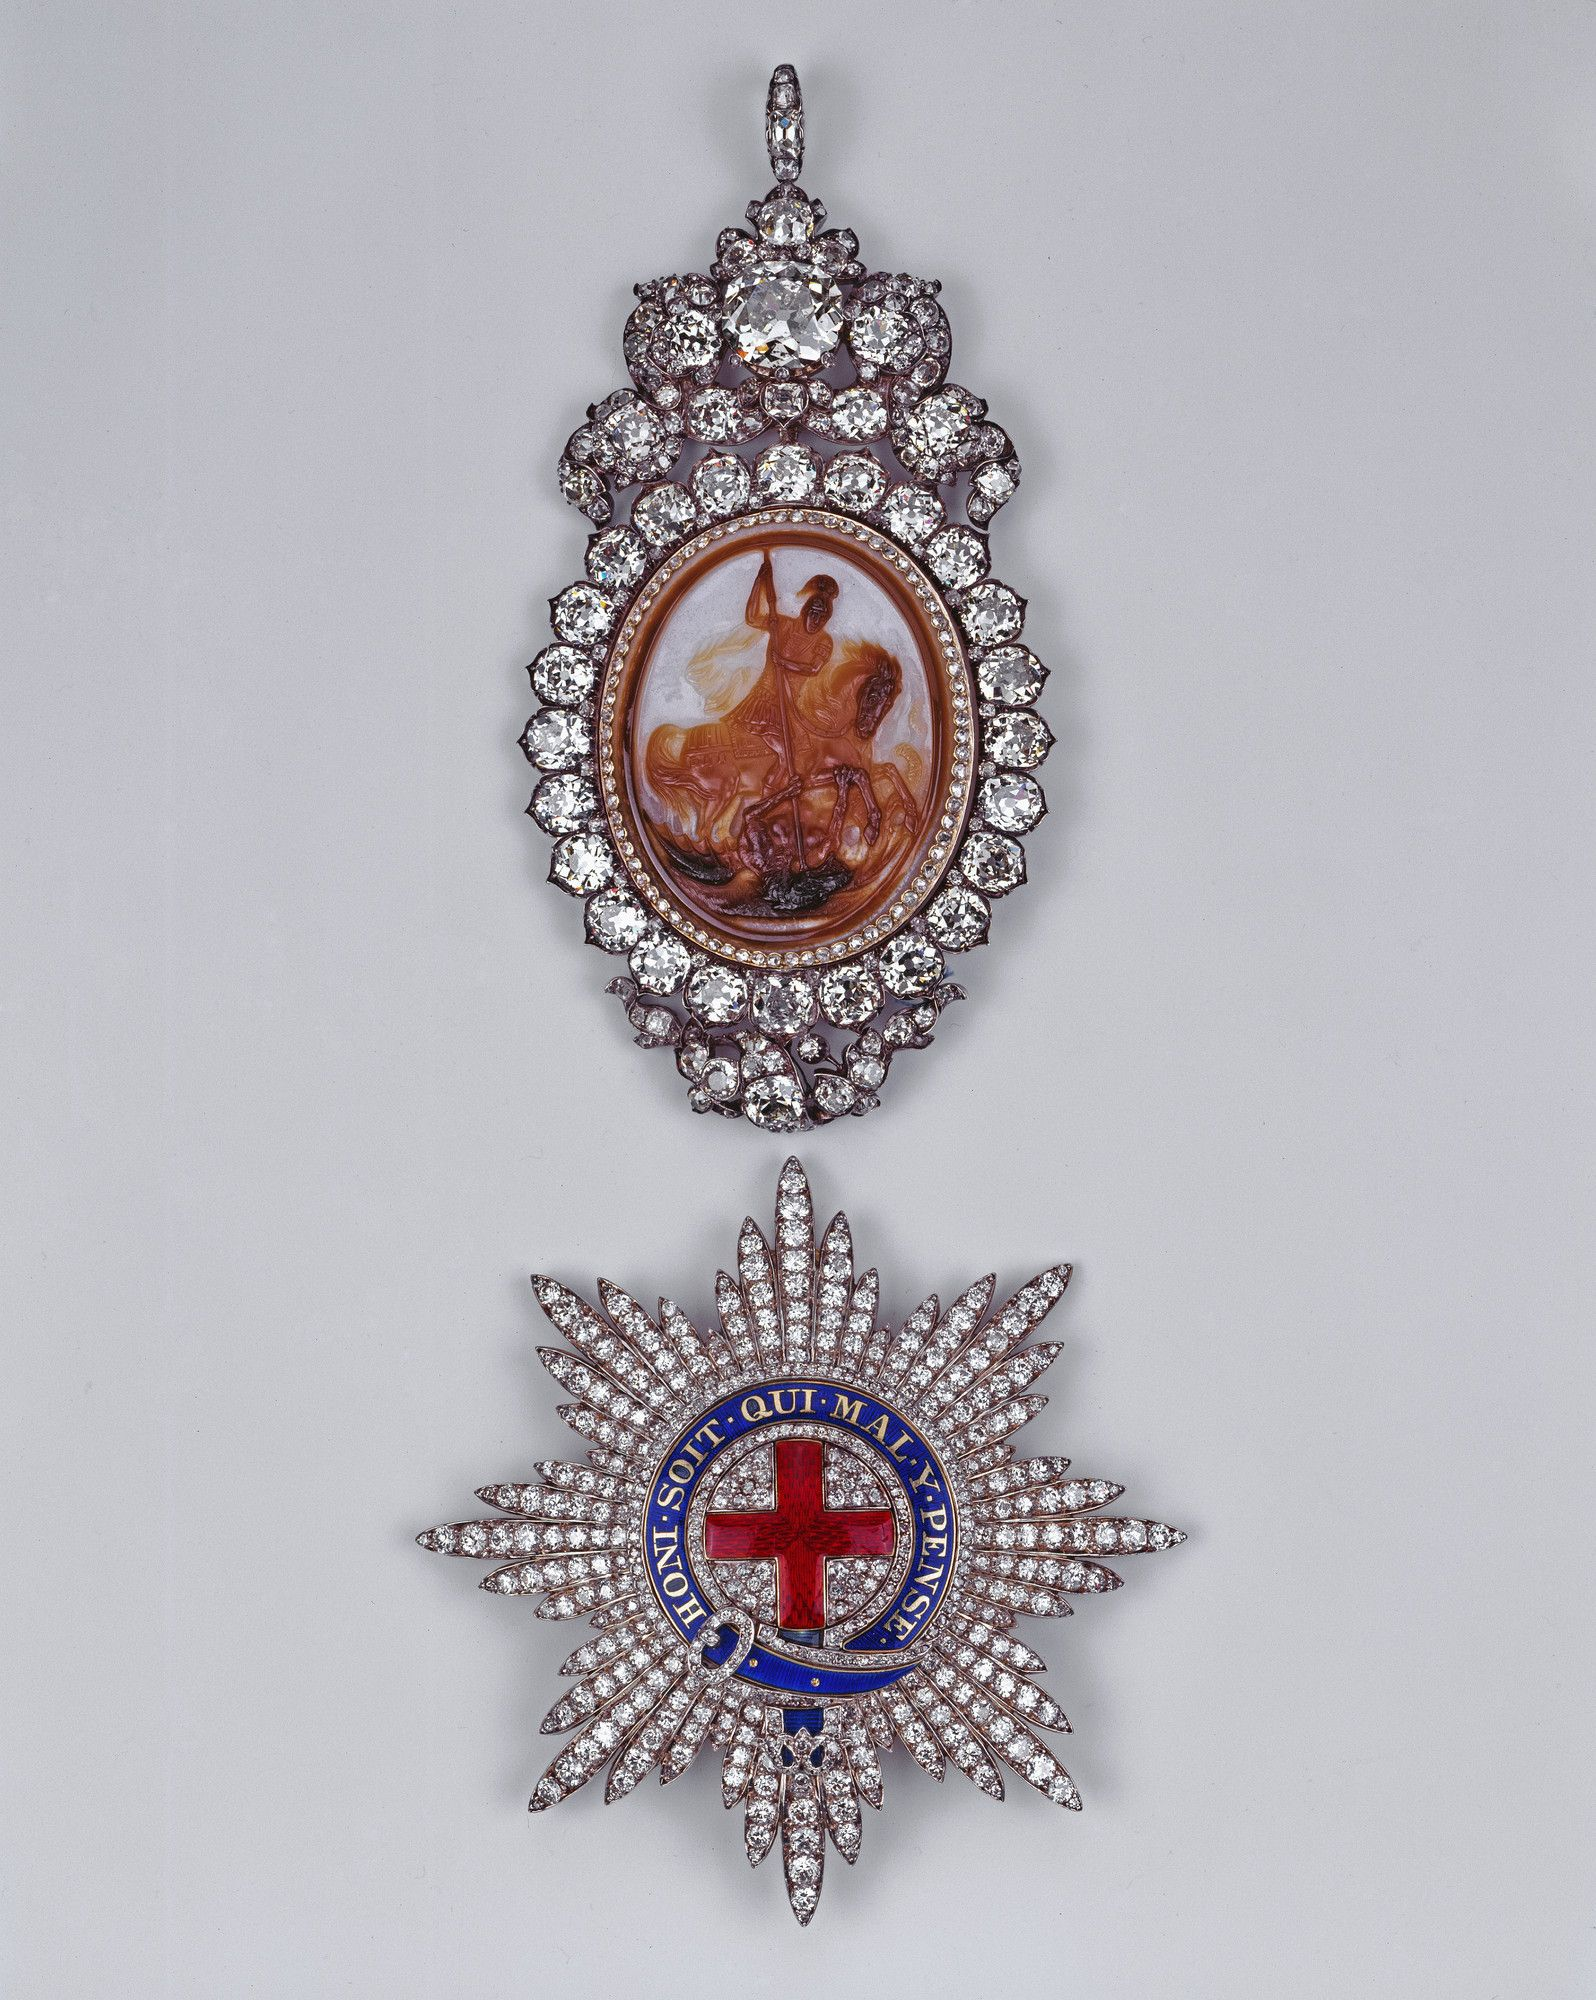 Prince Albert S Lesser George Cameo By Edward Burch C 1760 Set For George Iv 1829 Reset With Additi British Crown Jewels Order Of The Garter Royal Jewels